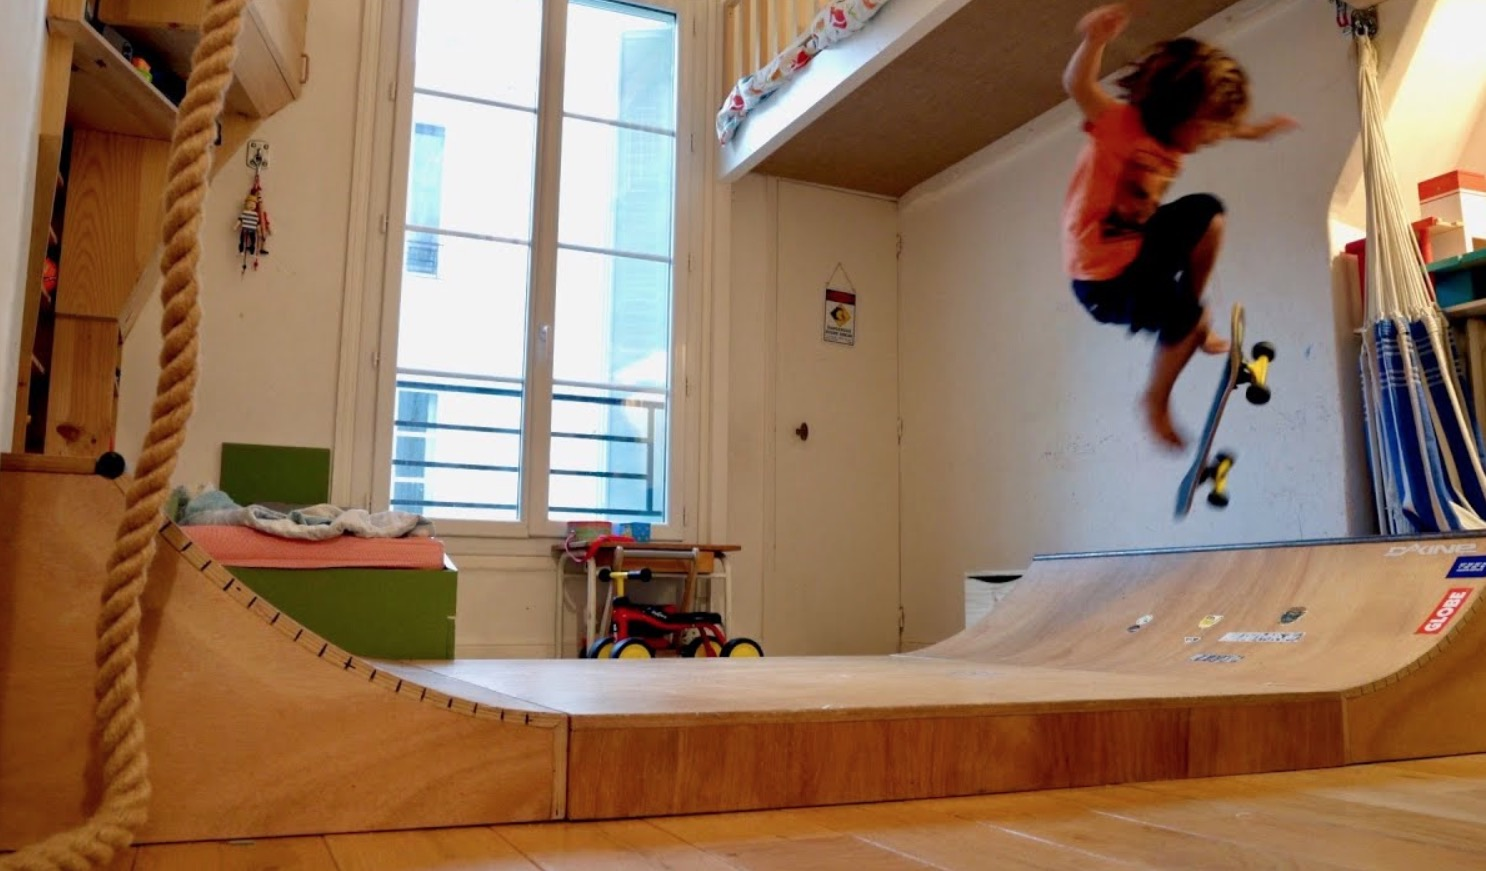 Man Builds A Skate Ramp And Climbing Wall Inside His Kid's Bedroom